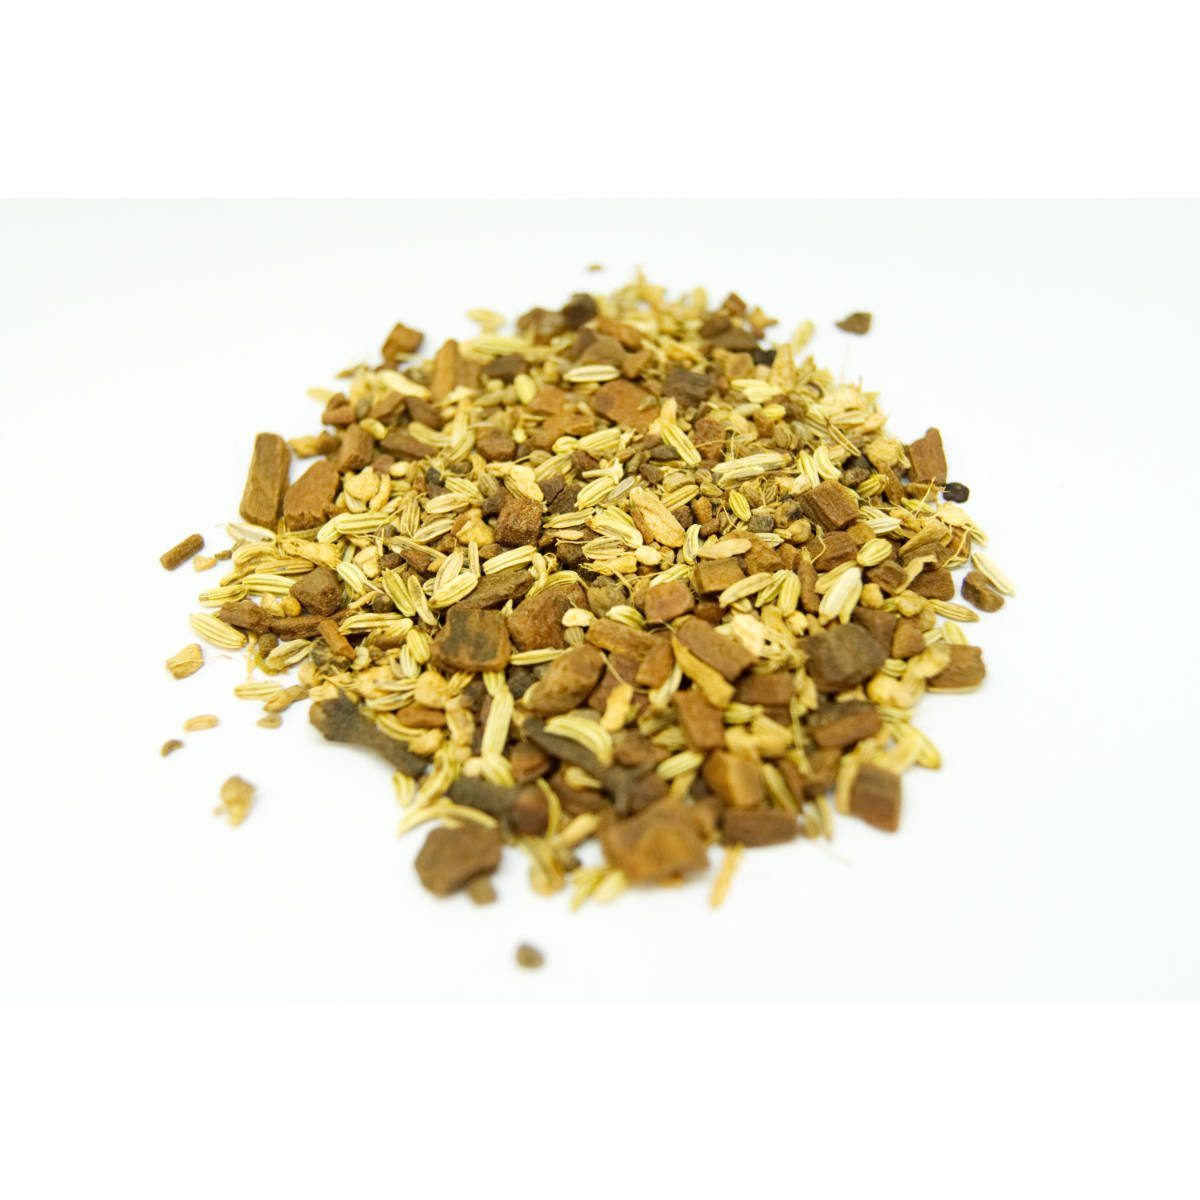 Indian Spice Chai Our best selling chai and it is caffeine free! All great chai spices giving amaing chai flavor